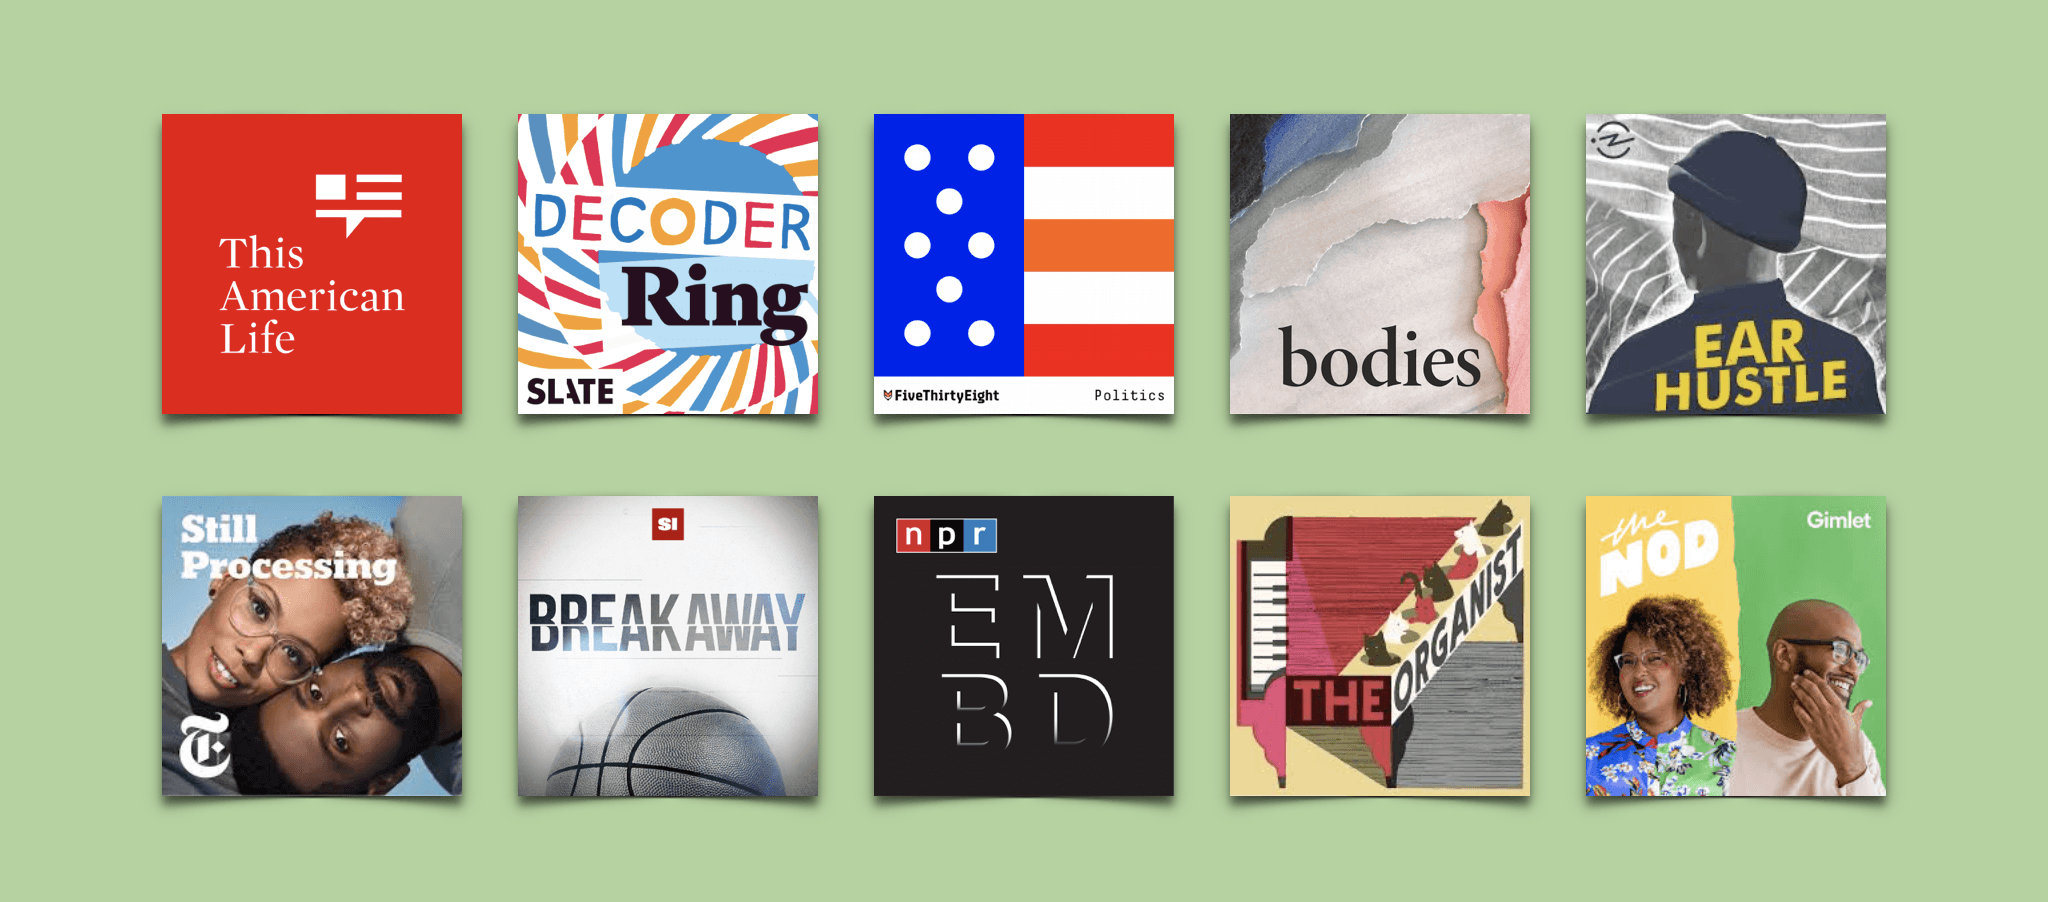 25 Best Podcast Episodes of 2018